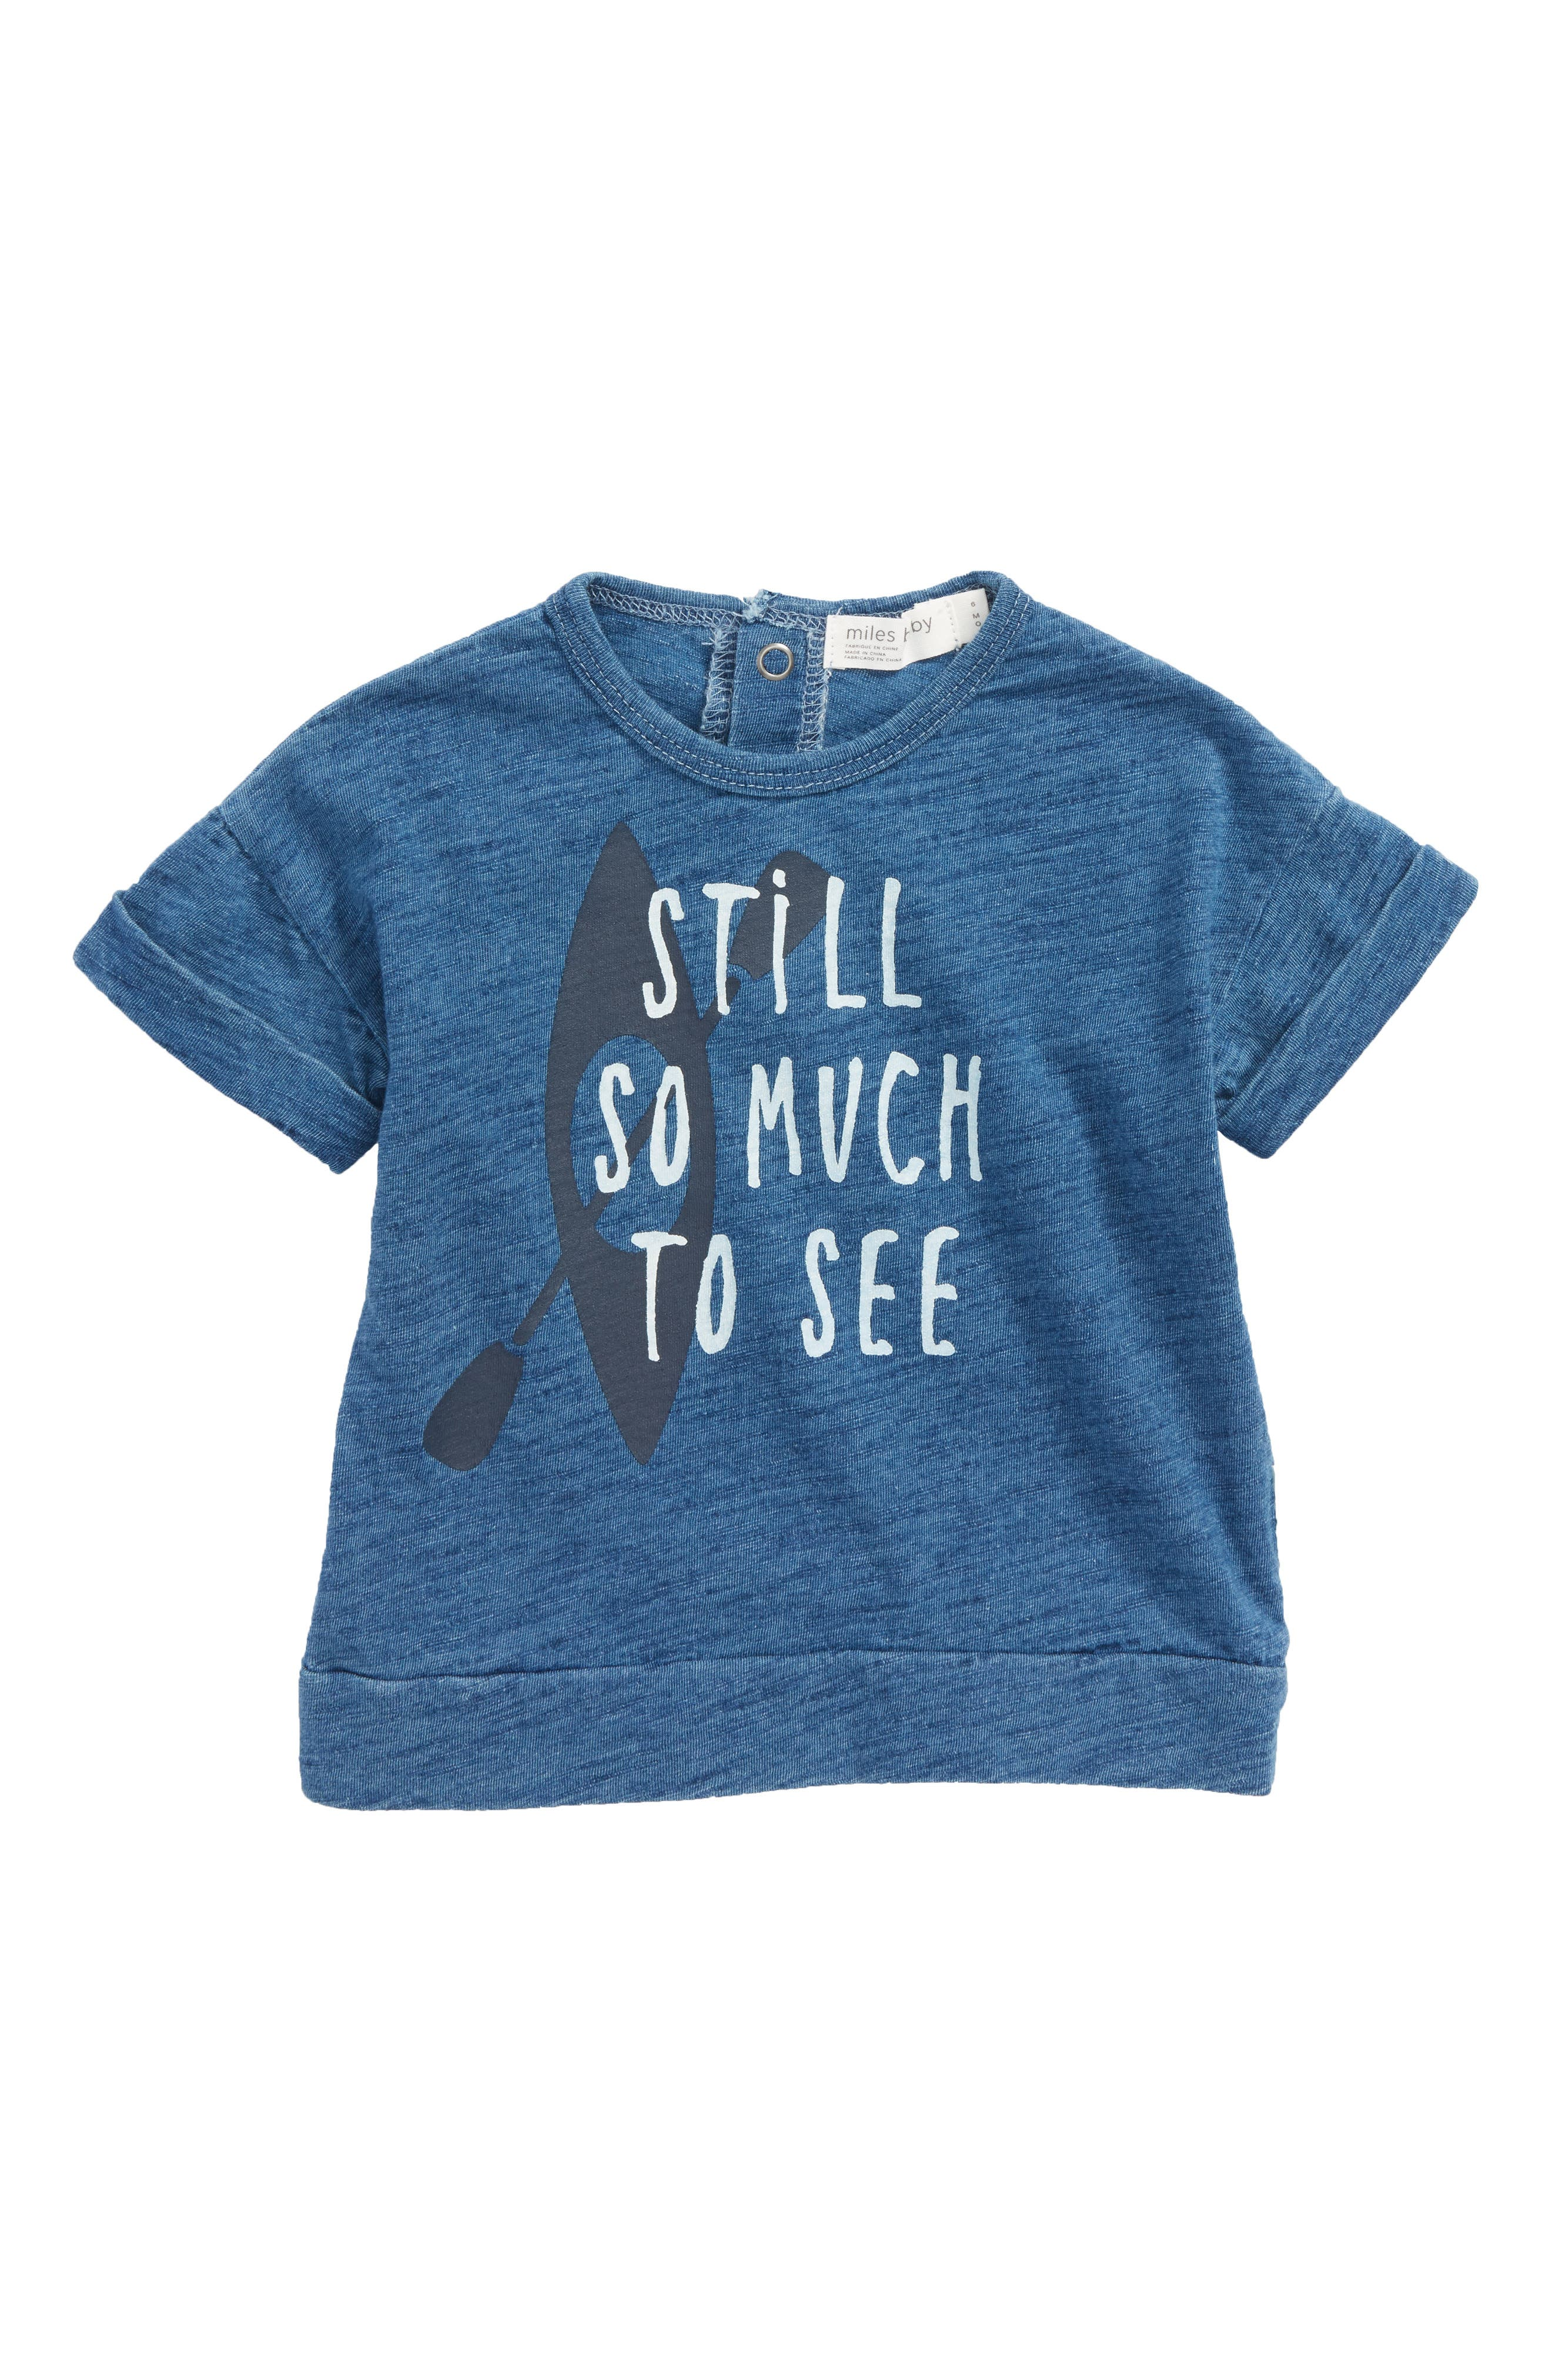 So Much To See T-Shirt,                         Main,                         color, Blue